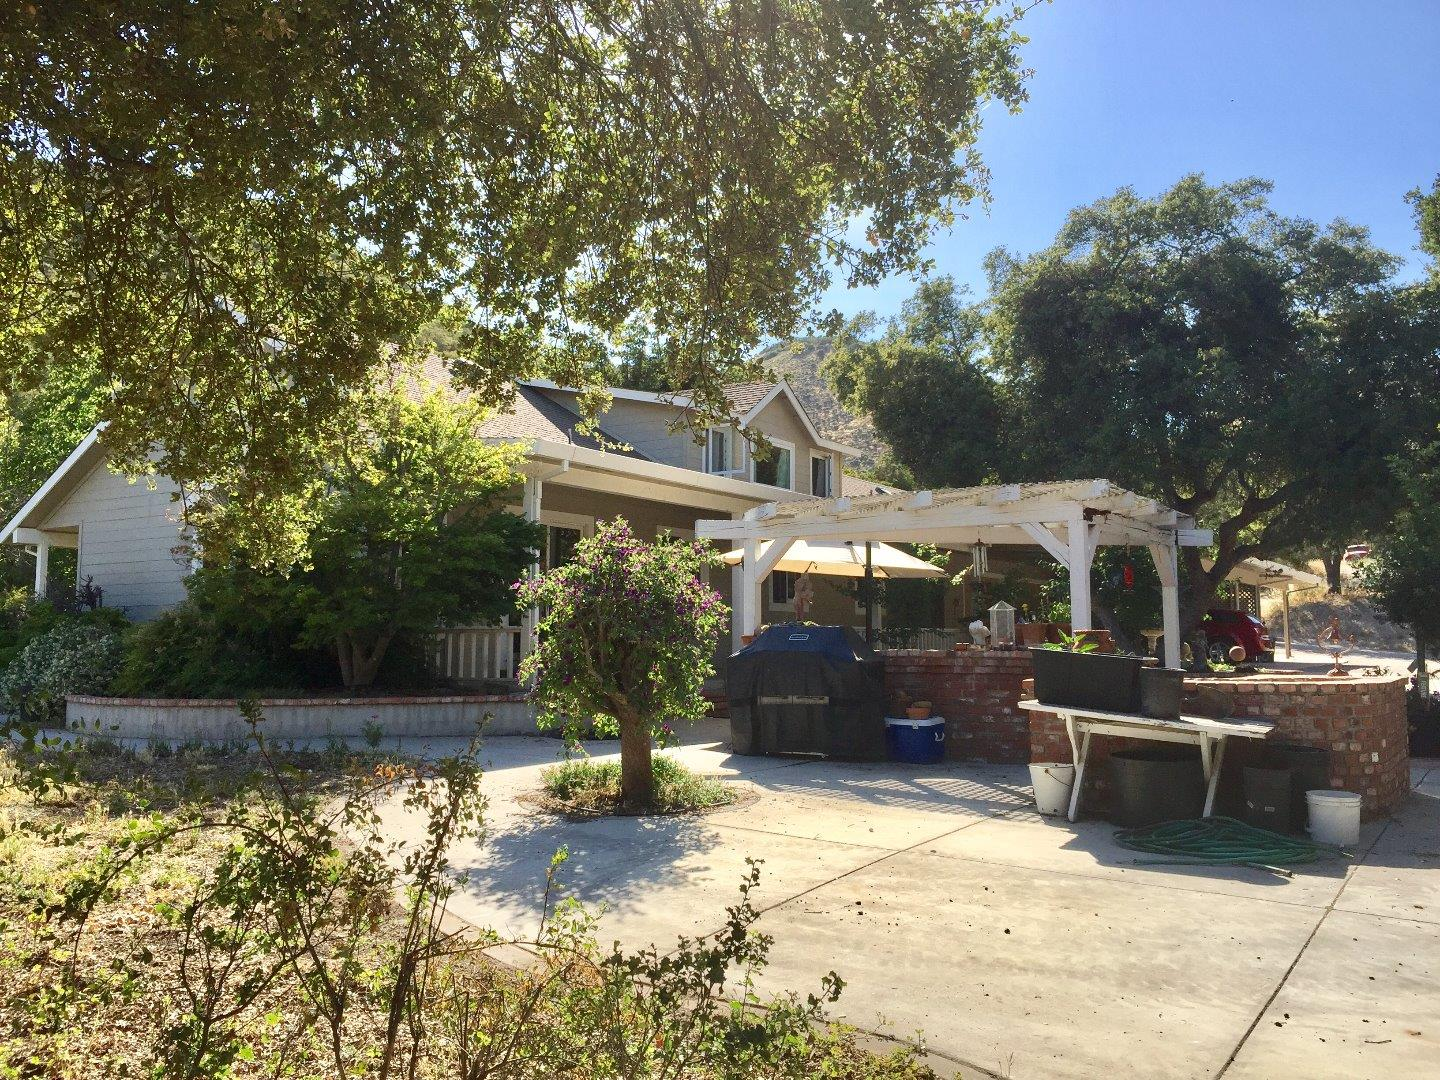 Single Family Home for Sale at 44103 Via Canada King City, California 93930 United States